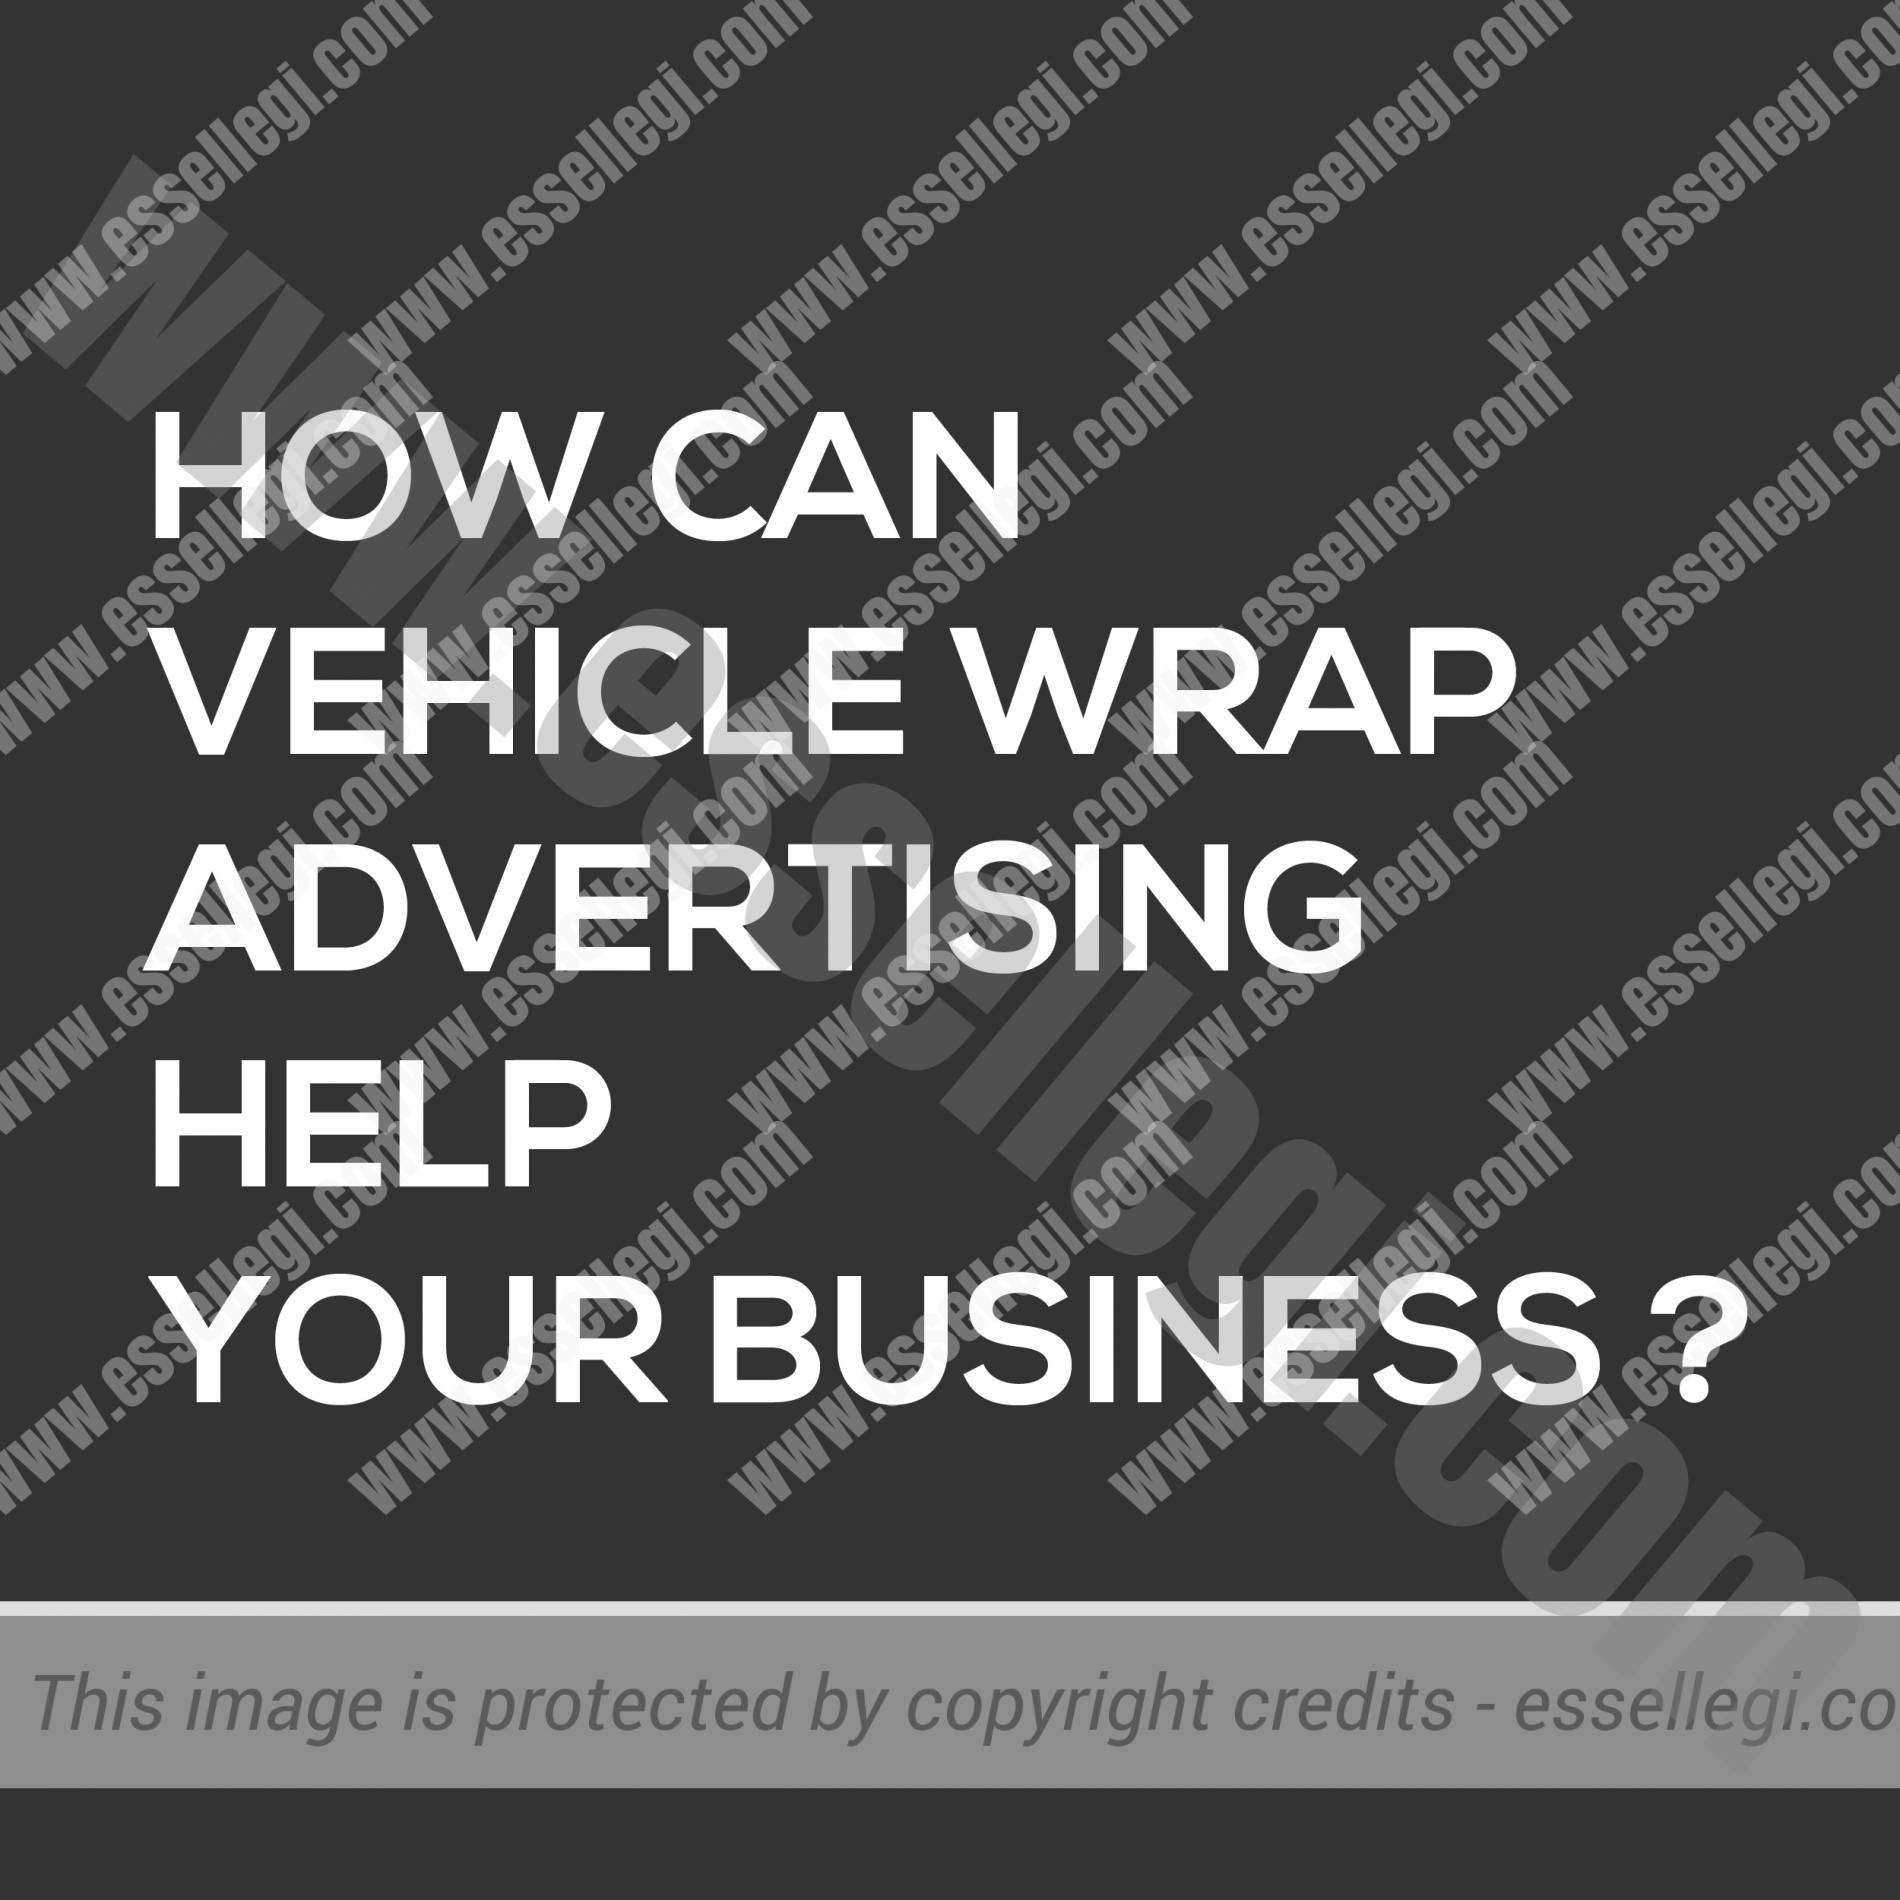 HOW CAN VEHICLE WRAP ADVERTISING HELP YOUR BUSINESS ?